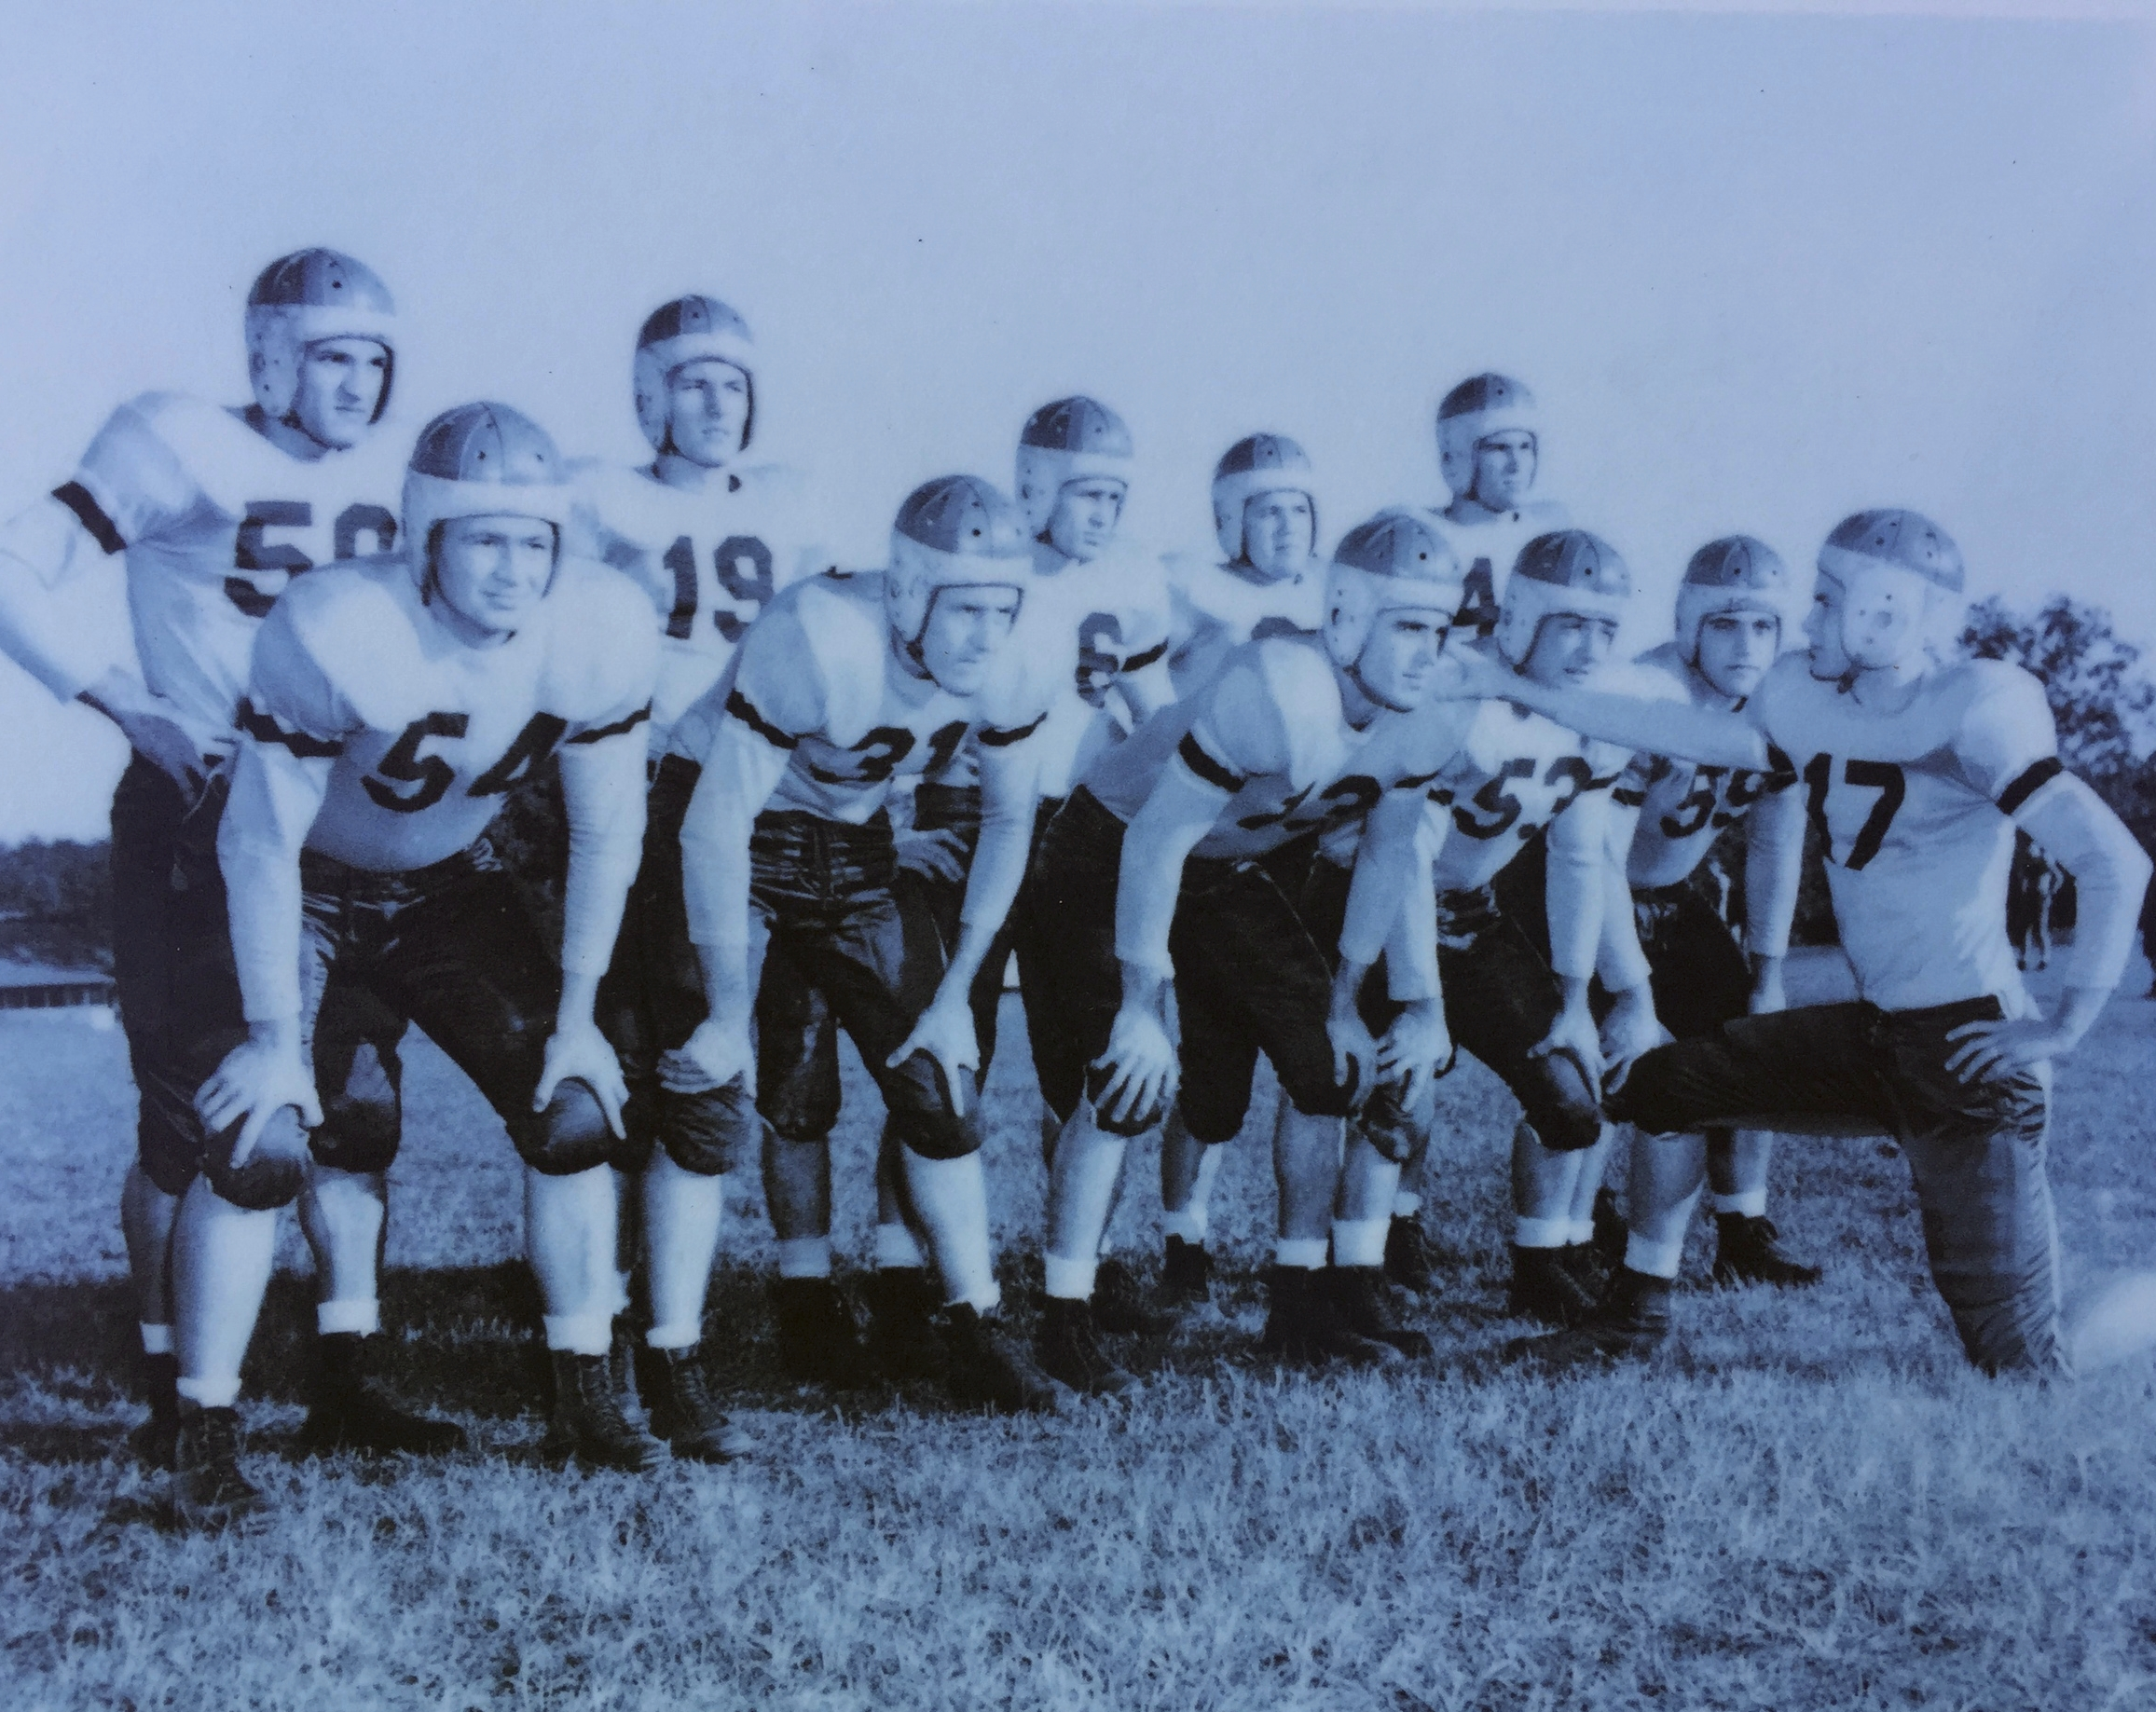 That's my dad, number 13, bent over on the first row with the quarterback's hand on his shoulder pad. He loved sports more than anything and spent many happy hours playing at the old Centennial Field. Dad was captain of the first men'sbasketball team at FSU which had just gone co-ed and  an all star athlete at Leon High School, which my son now attends.